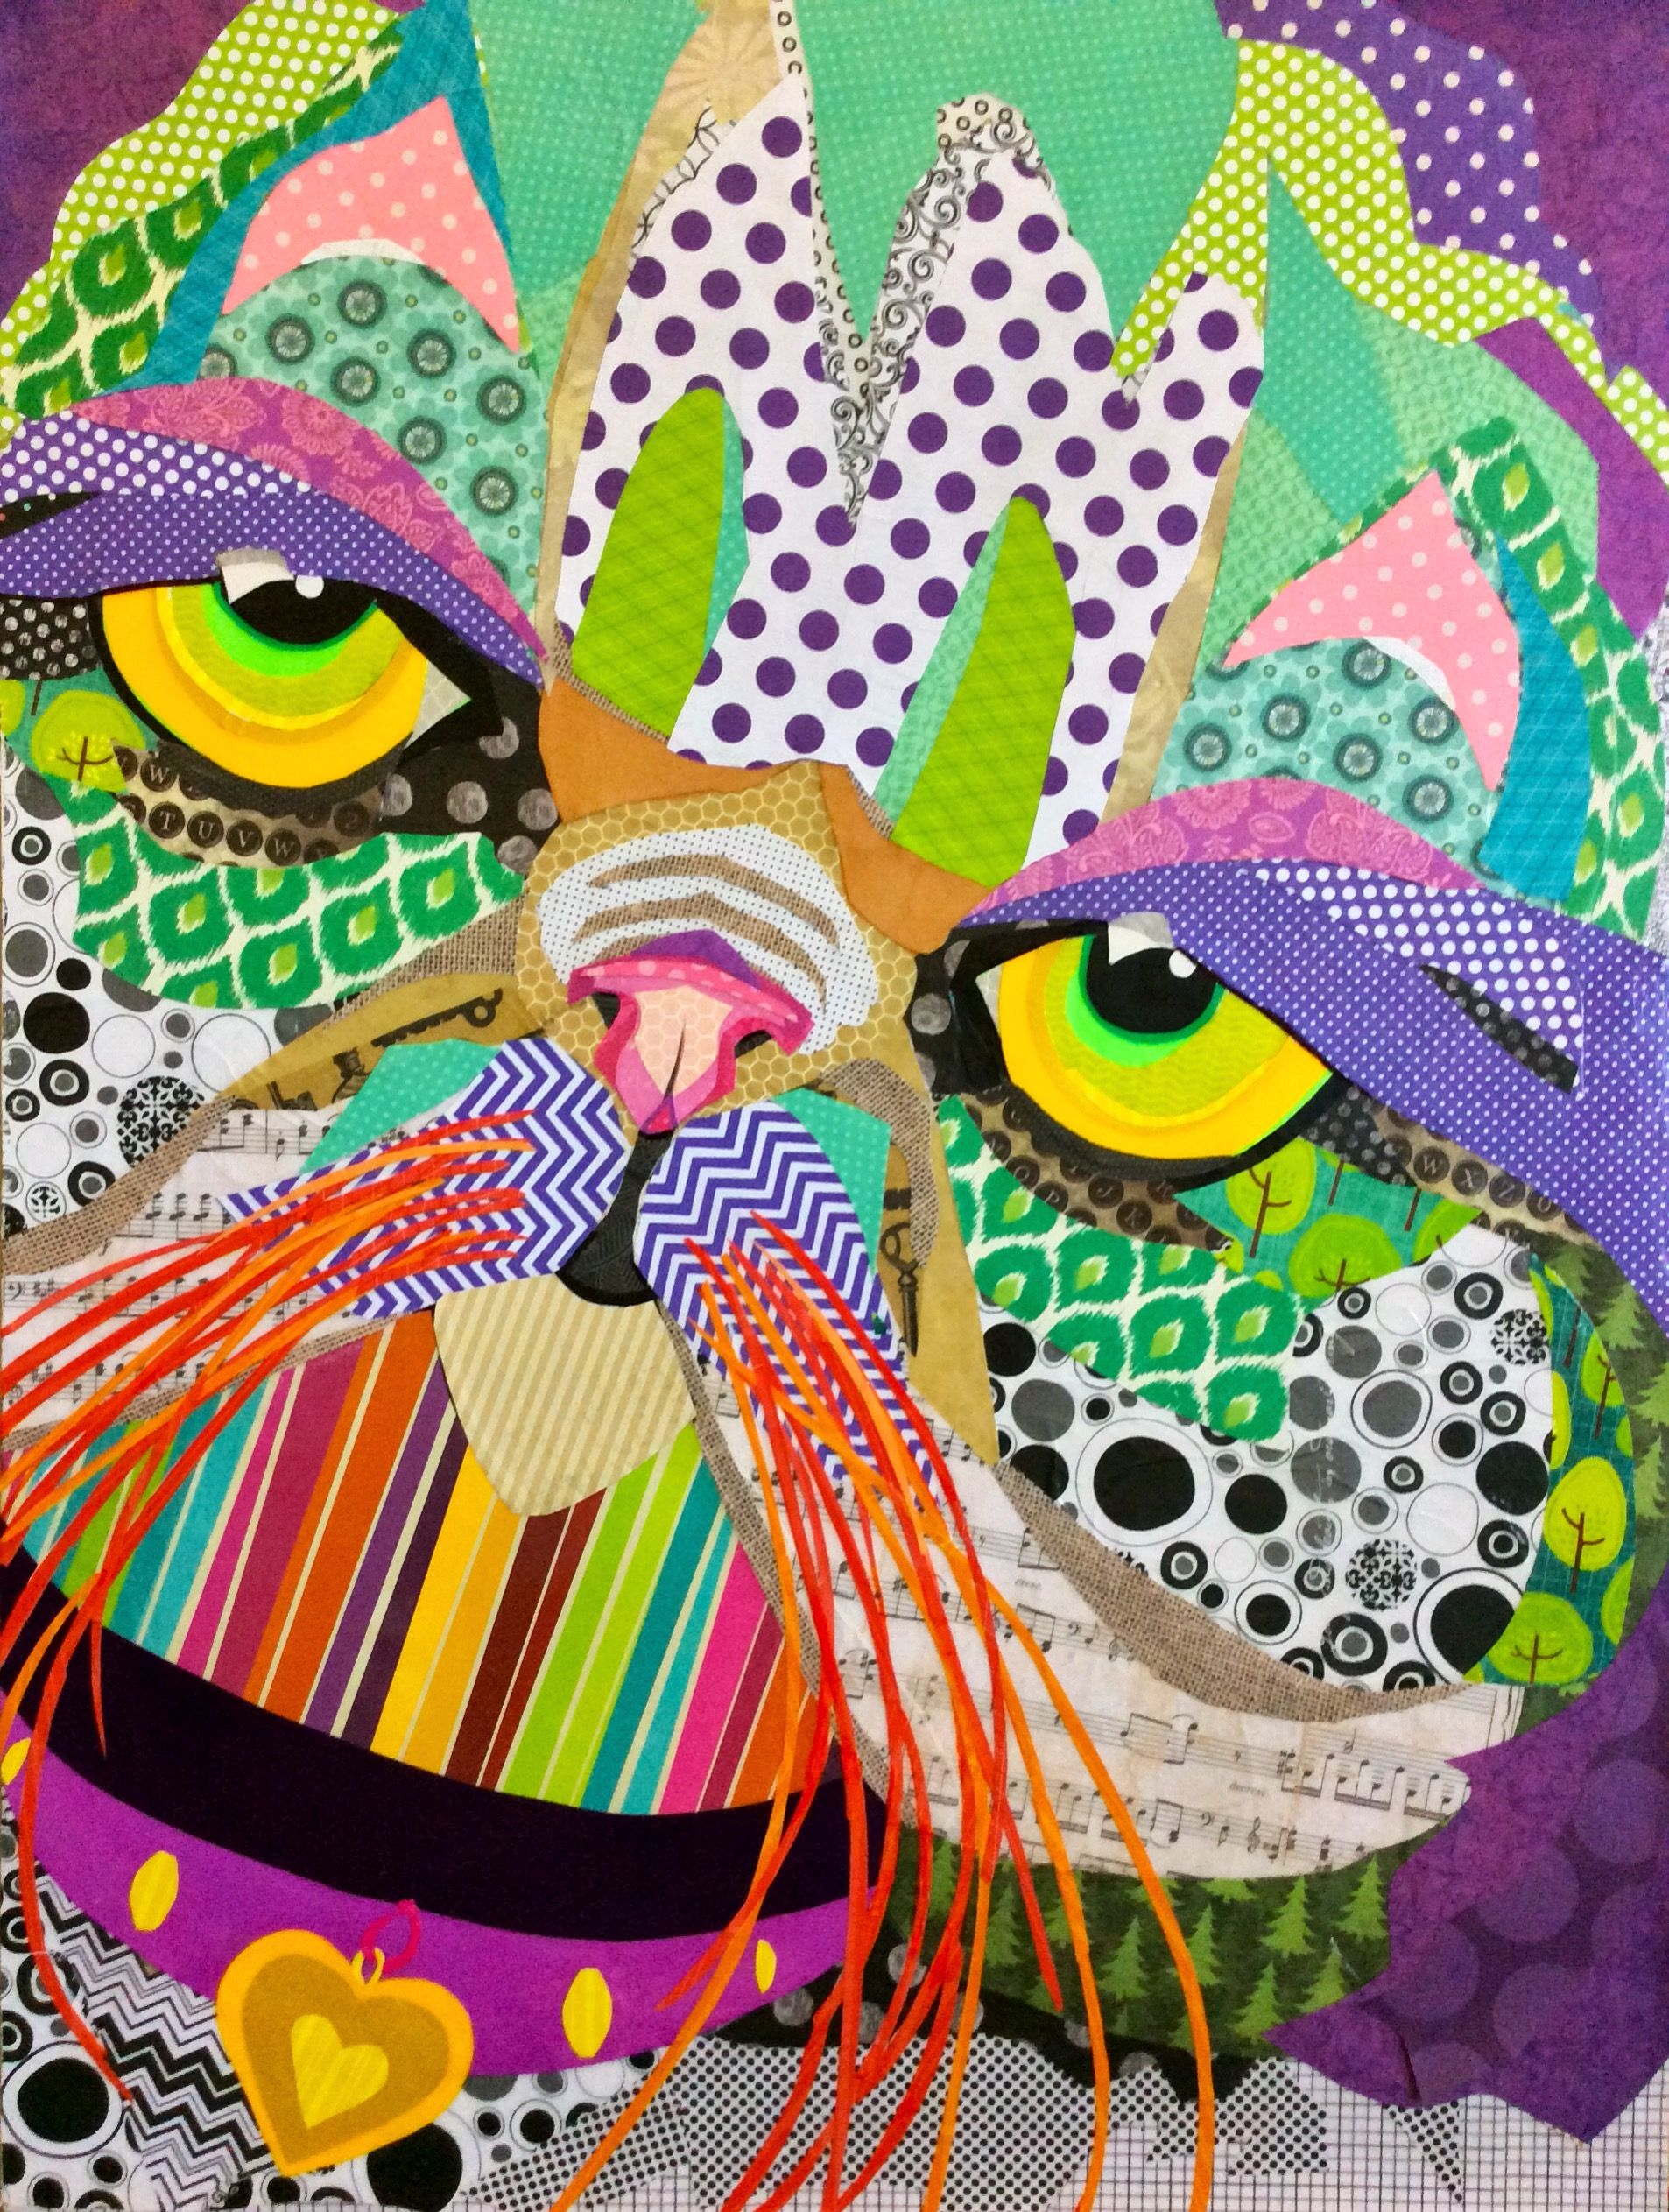 Scrapbook paper collage - Scrapbook Paper Collage Artwork Smushed Face Cat By Laura Yager 24